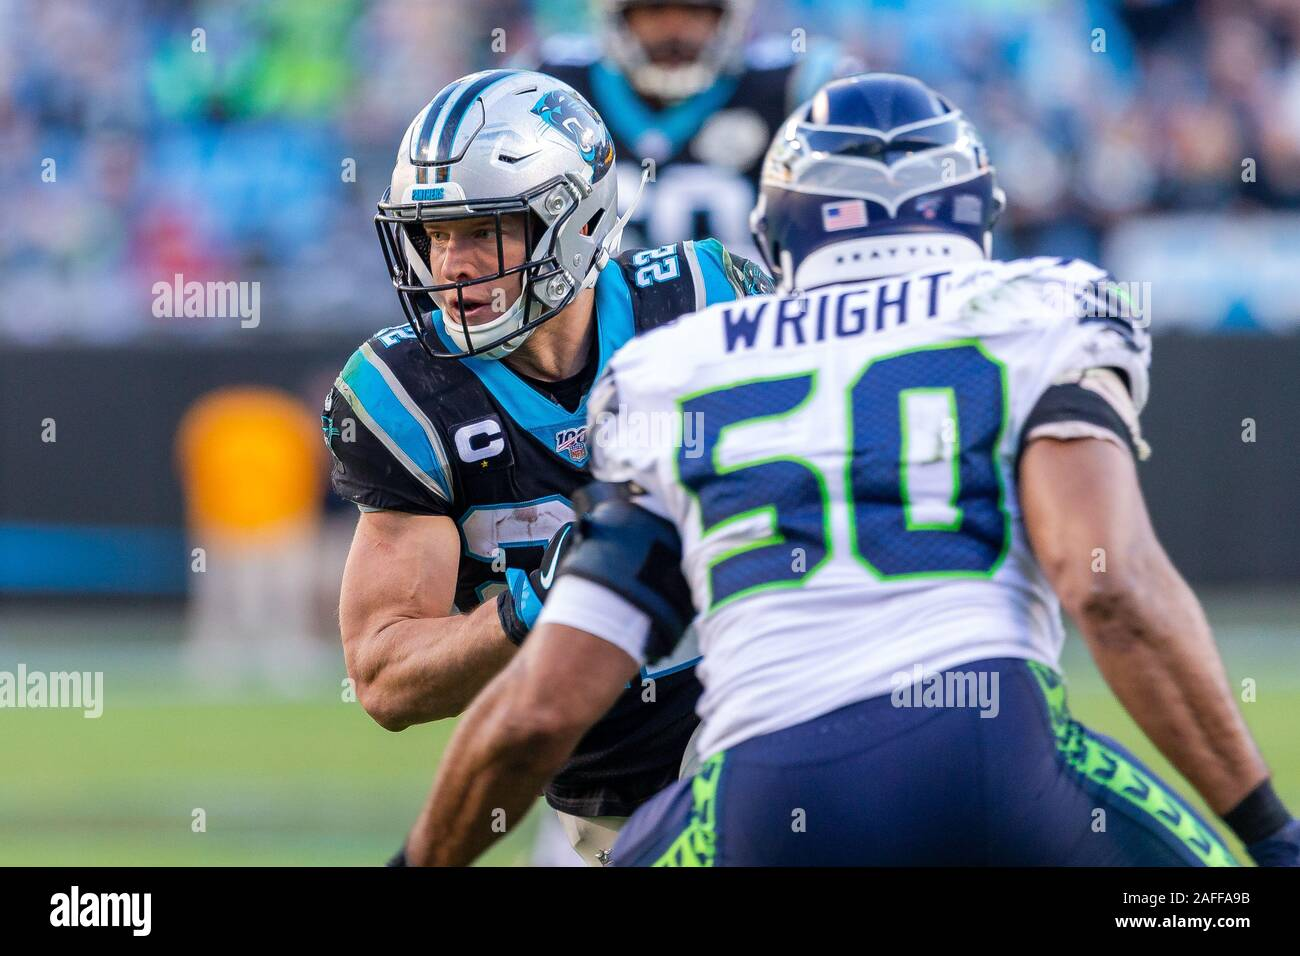 charlotte nc usa 15th dec 2019 carolina panthers running back christian mccaffrey 22 runs with the ball against the seattle seahawks in the fourth quarter of the nfl matchup at bank of america stadium in charlotte nc scott kinsercal sport media credit csmalamy live news 2AFFA9B